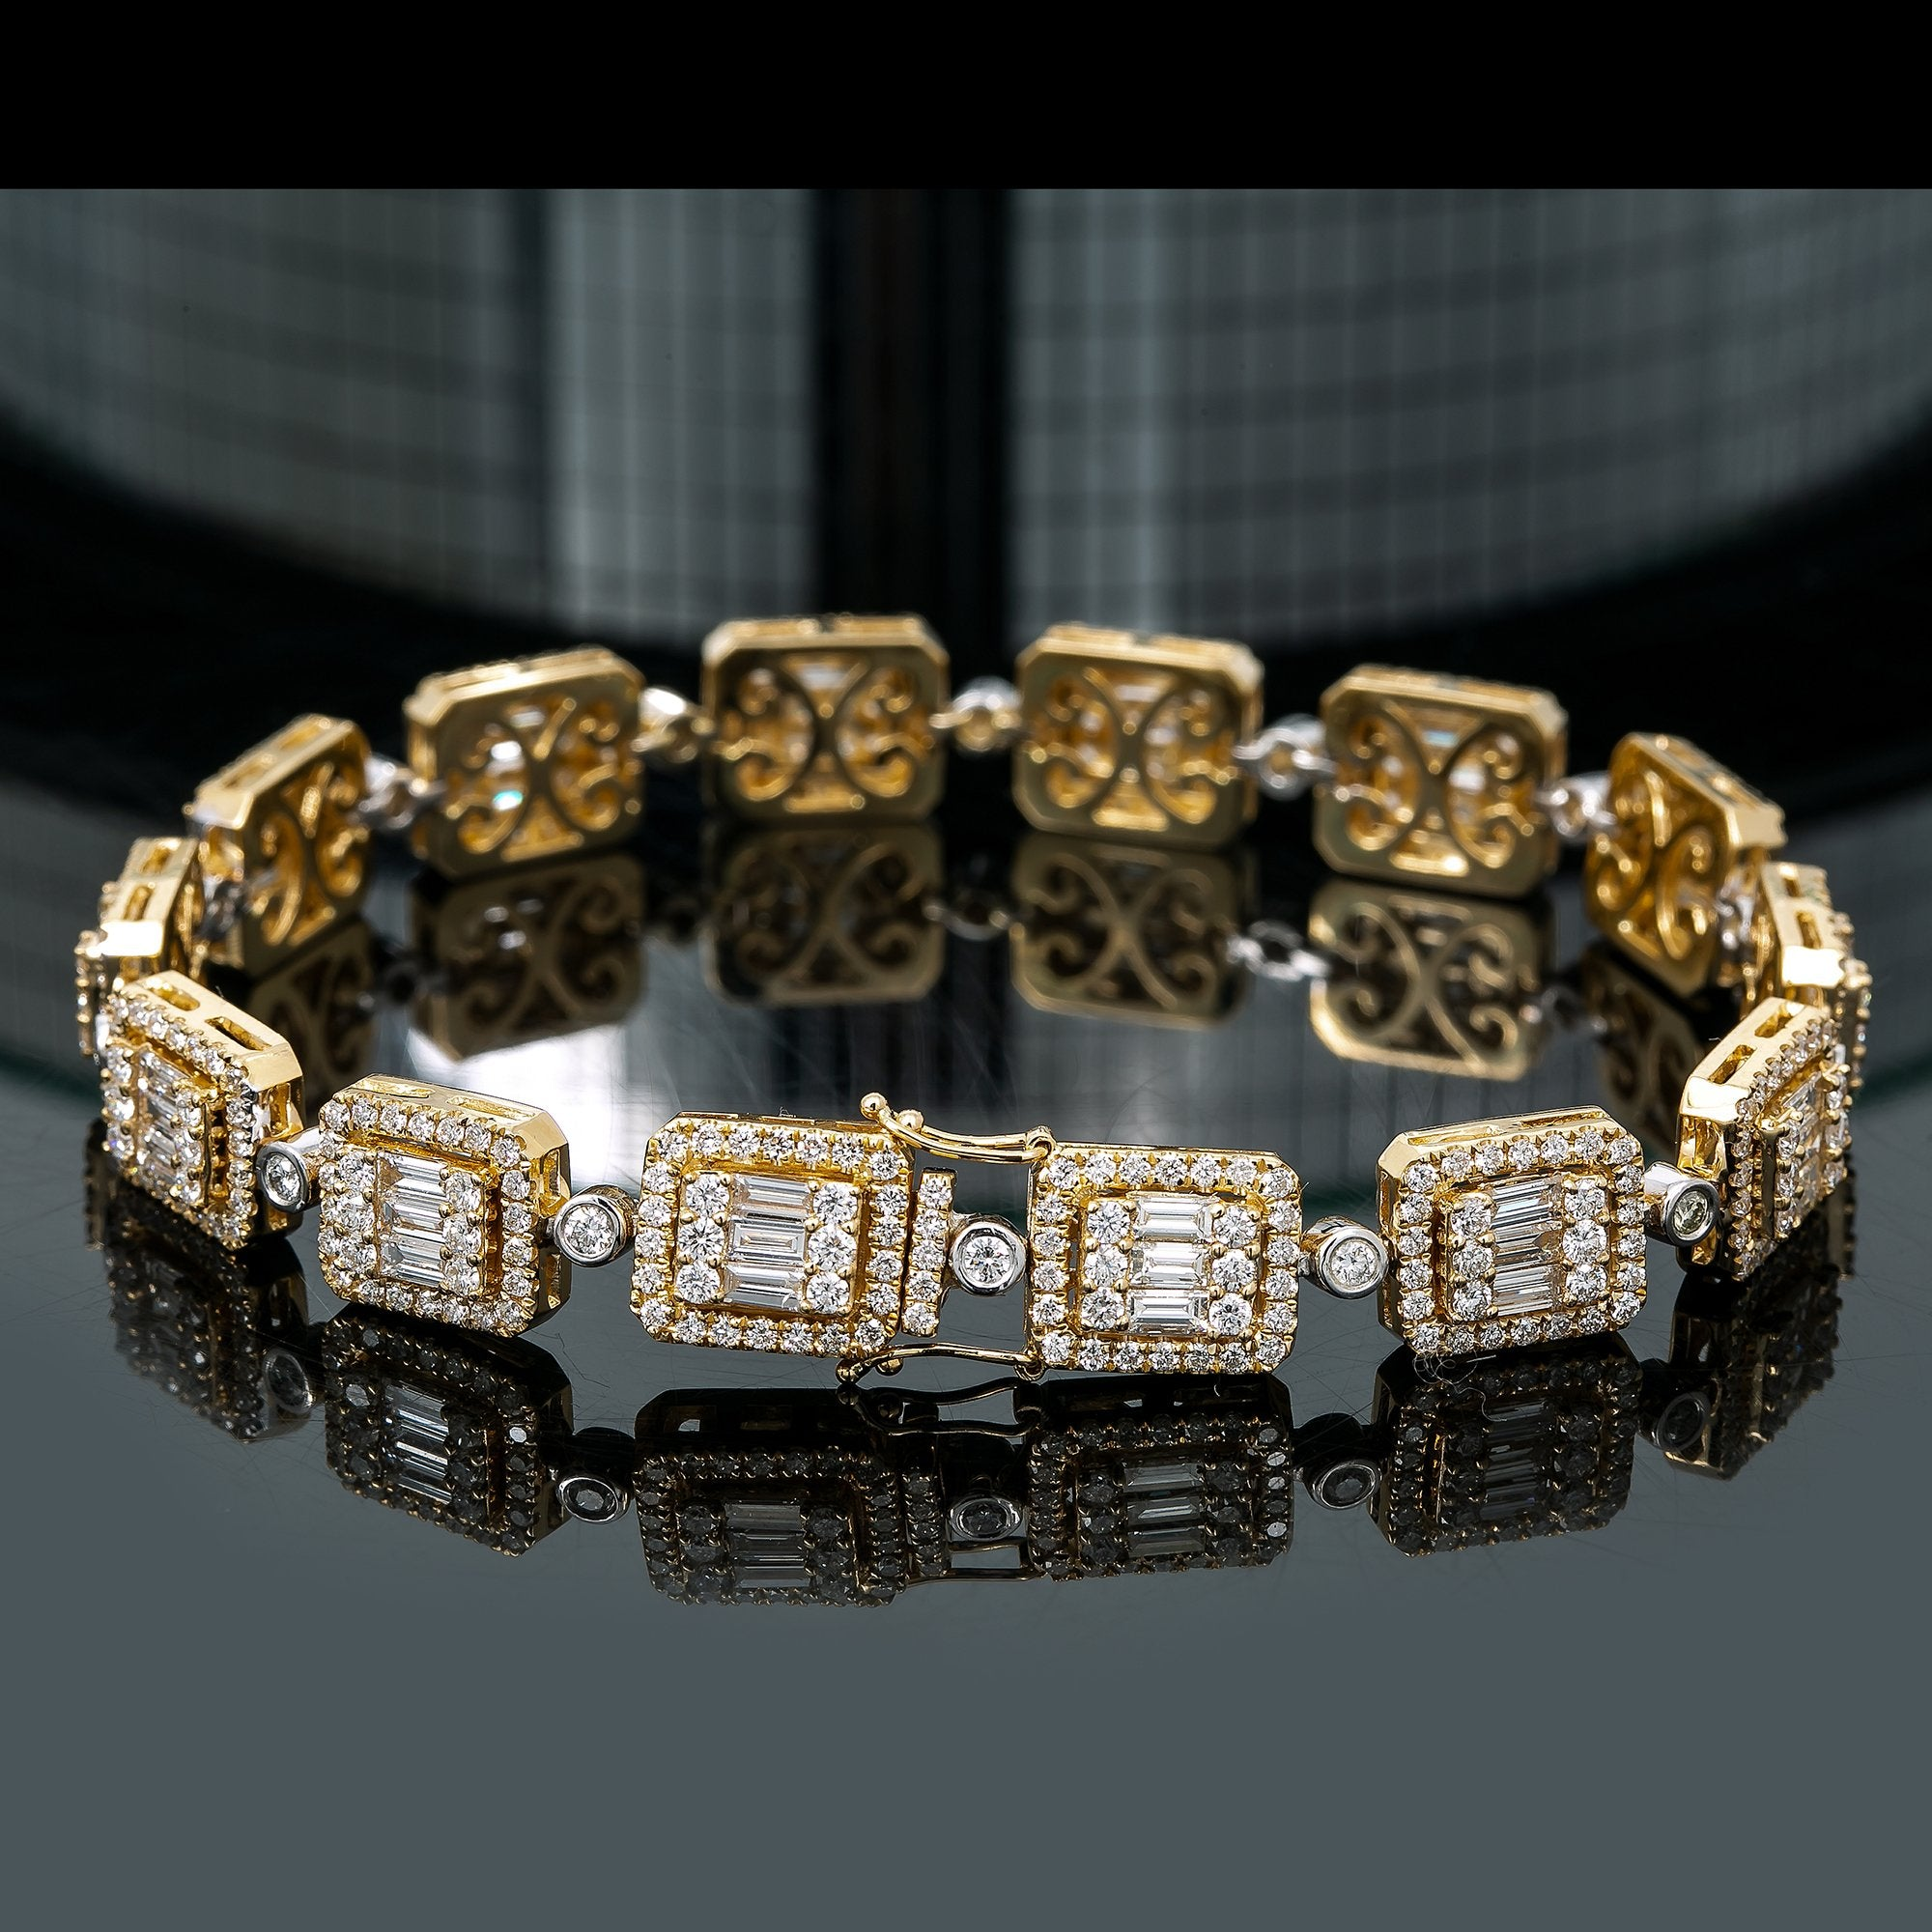 14K Yellow and White Gold Men's Bracelet With Total of 10.06 CT Diamonds